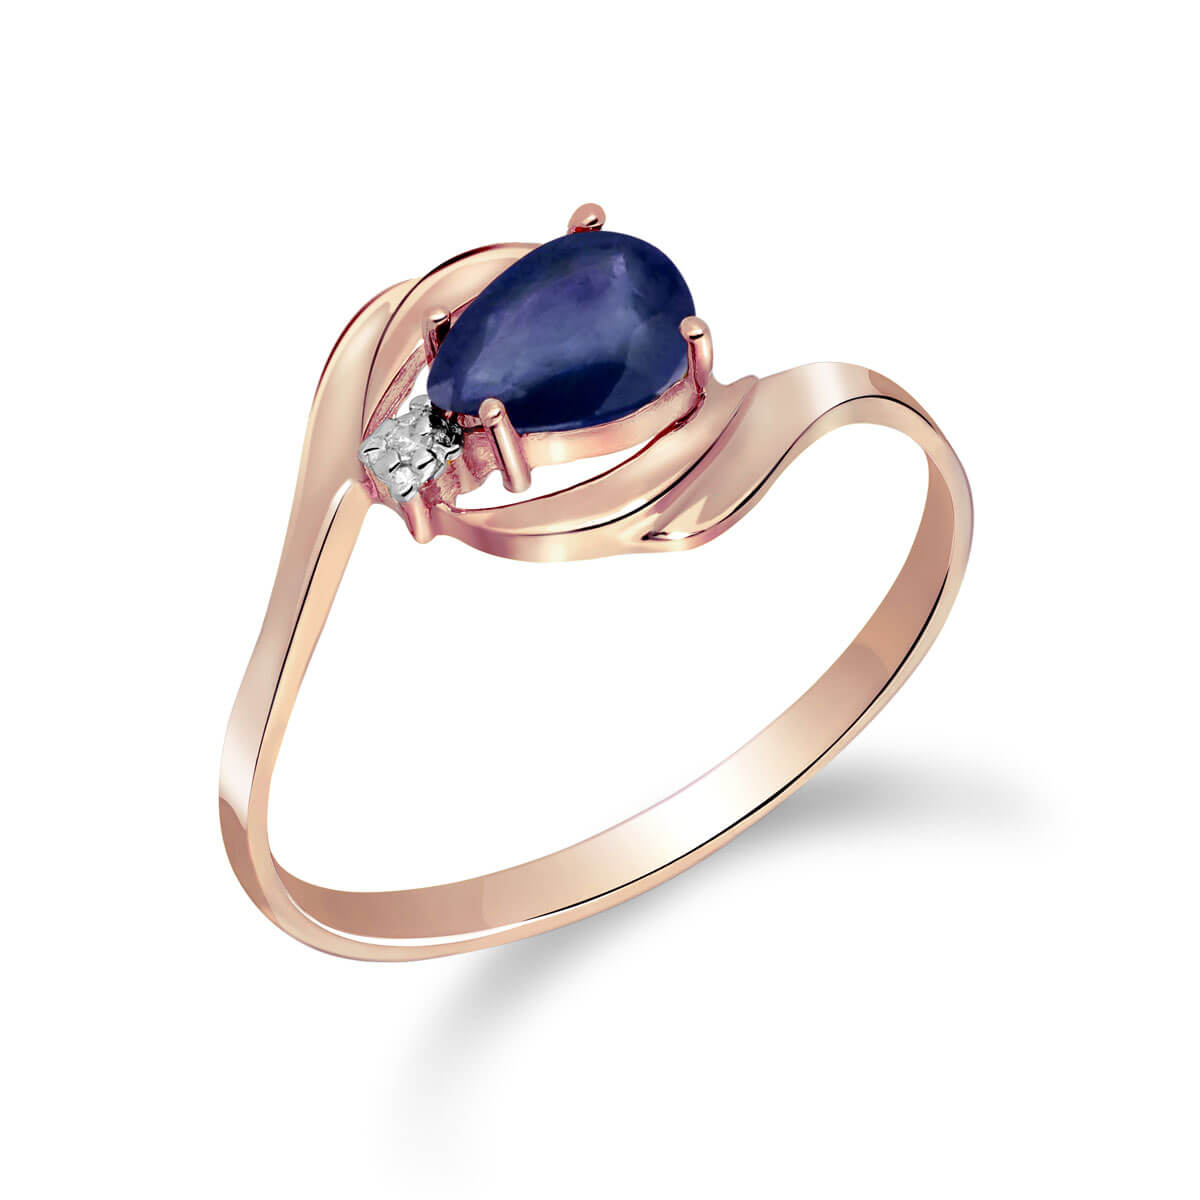 Sapphire & Diamond Flare Ring in 9ct Rose Gold